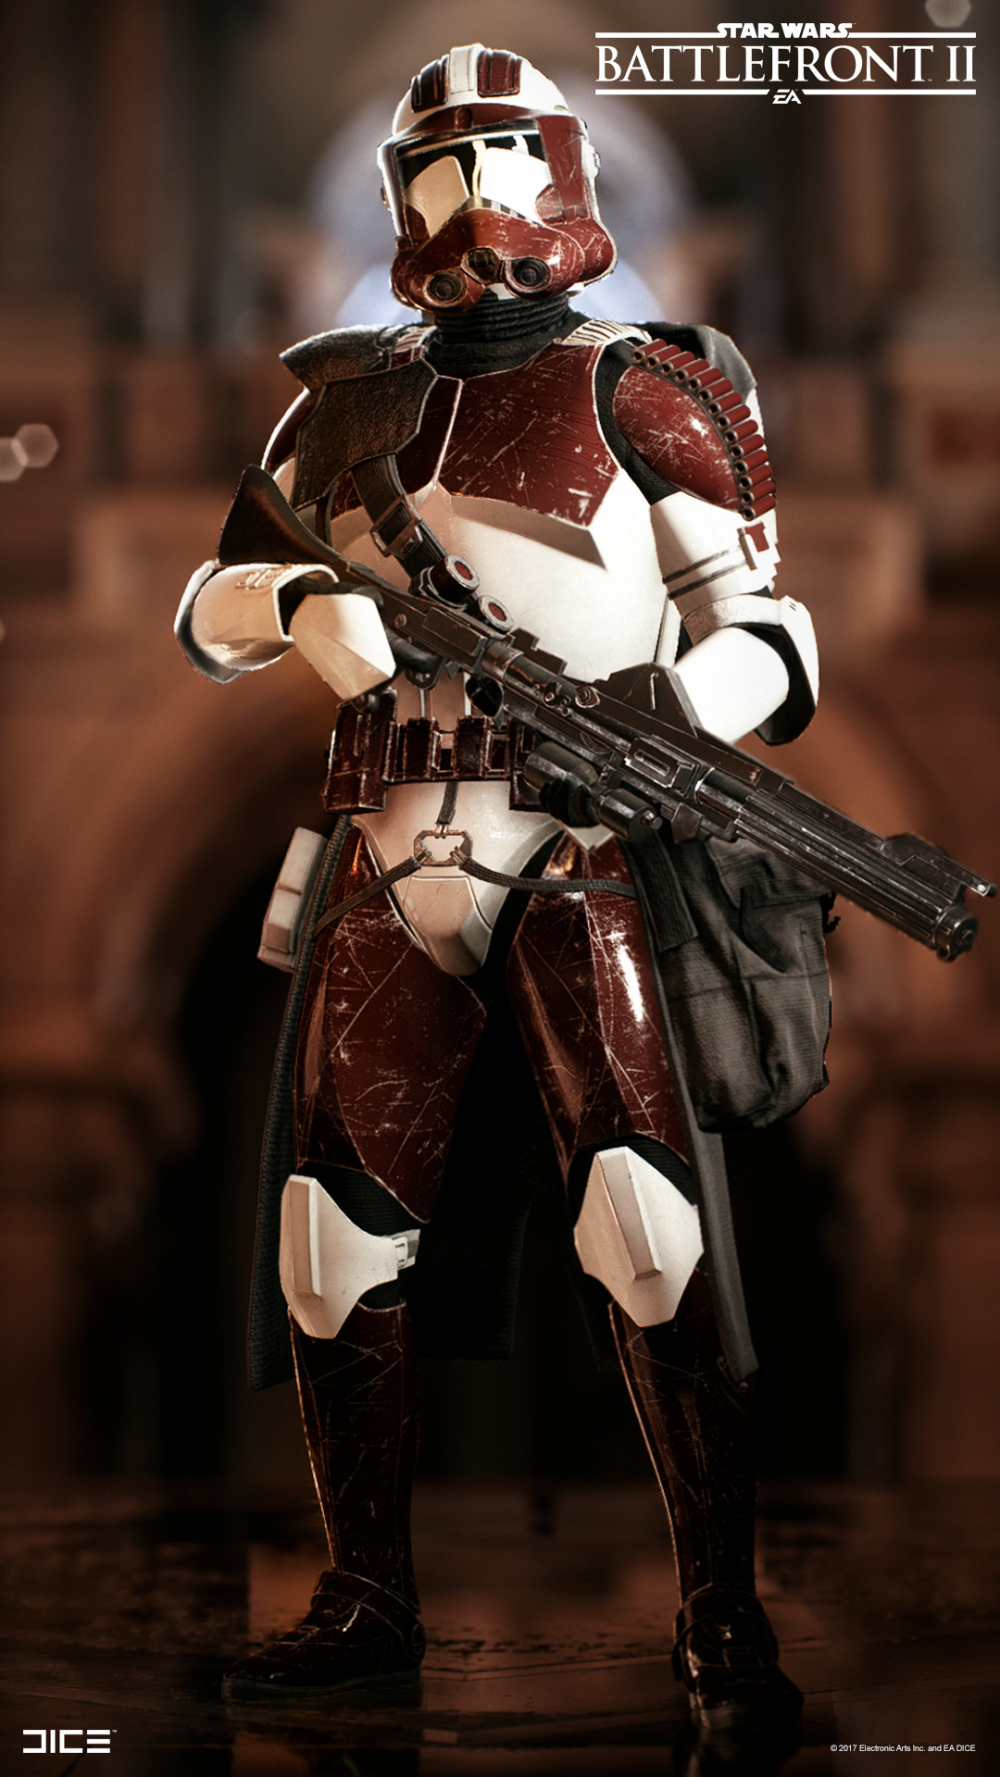 Star Wars Battlefront 2 Clone Trooper Heavy Class Bjorn Arvidsson 4k Best Of Wallpapers For Andriod And Ios